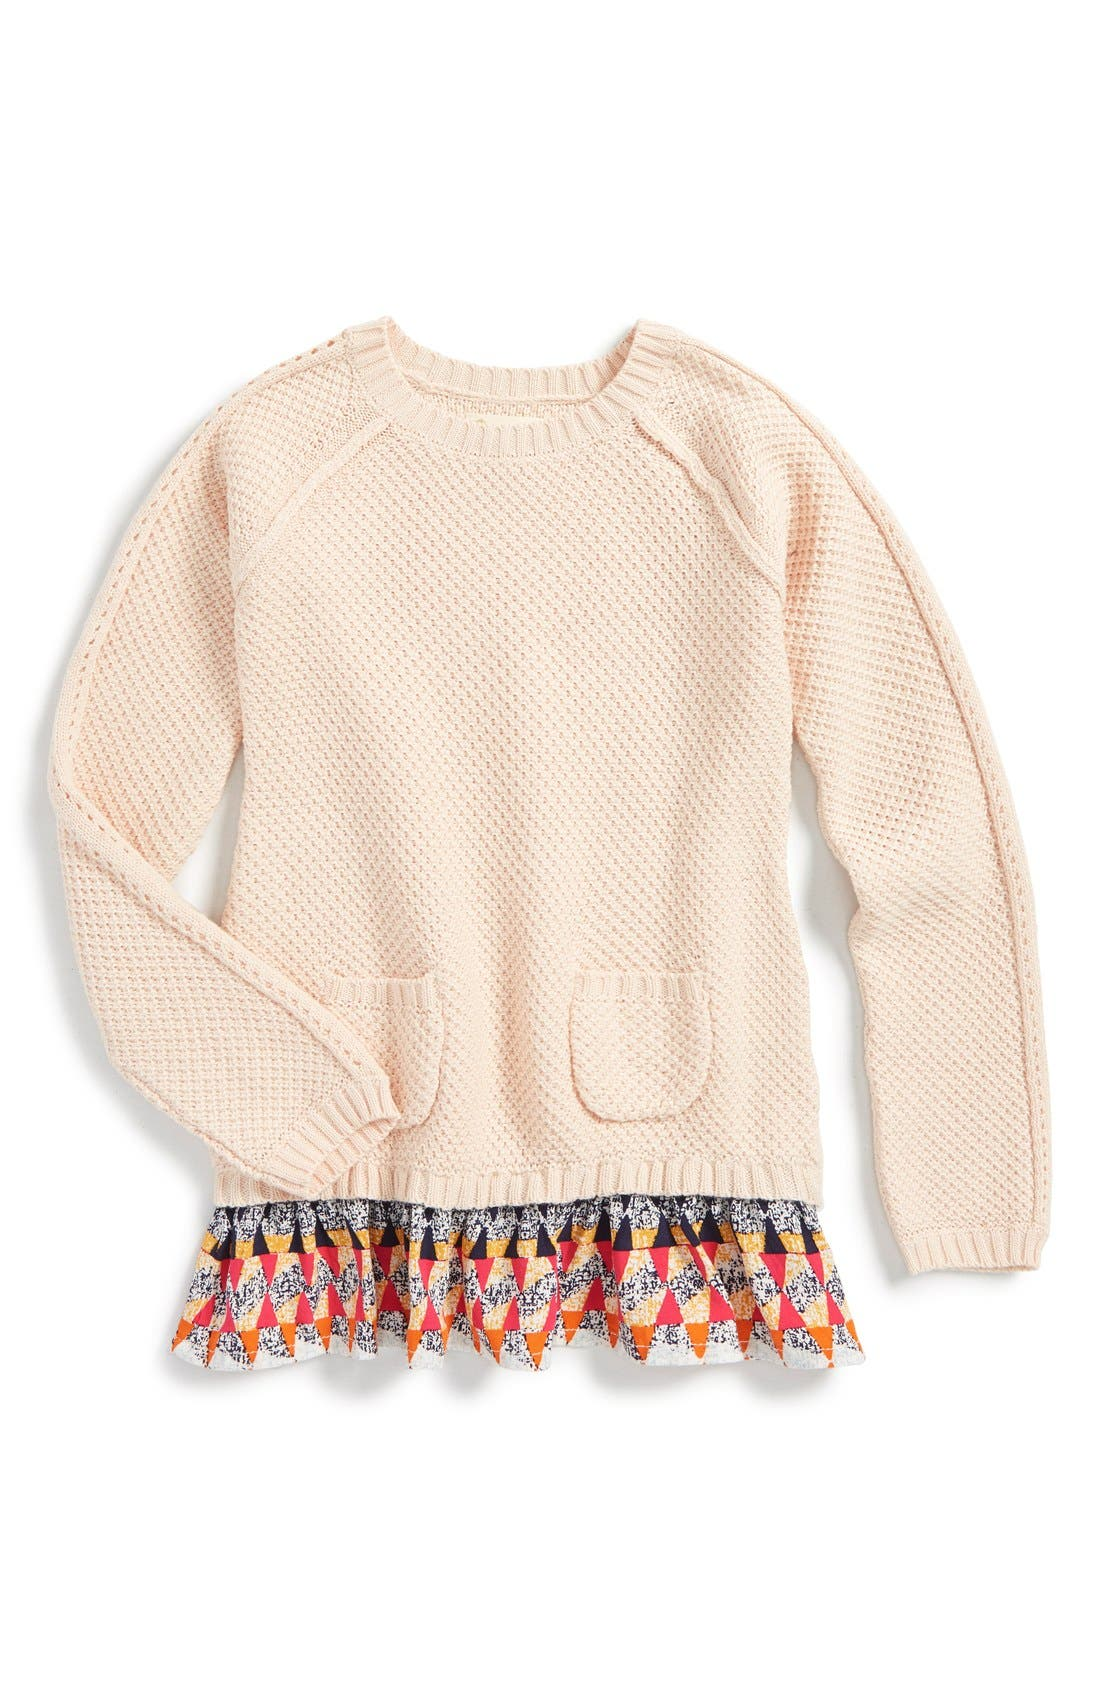 Main Image - Tucker + Tate Layered Ruffle Sweater (Toddler Girls, Little Girls & Big Girls)